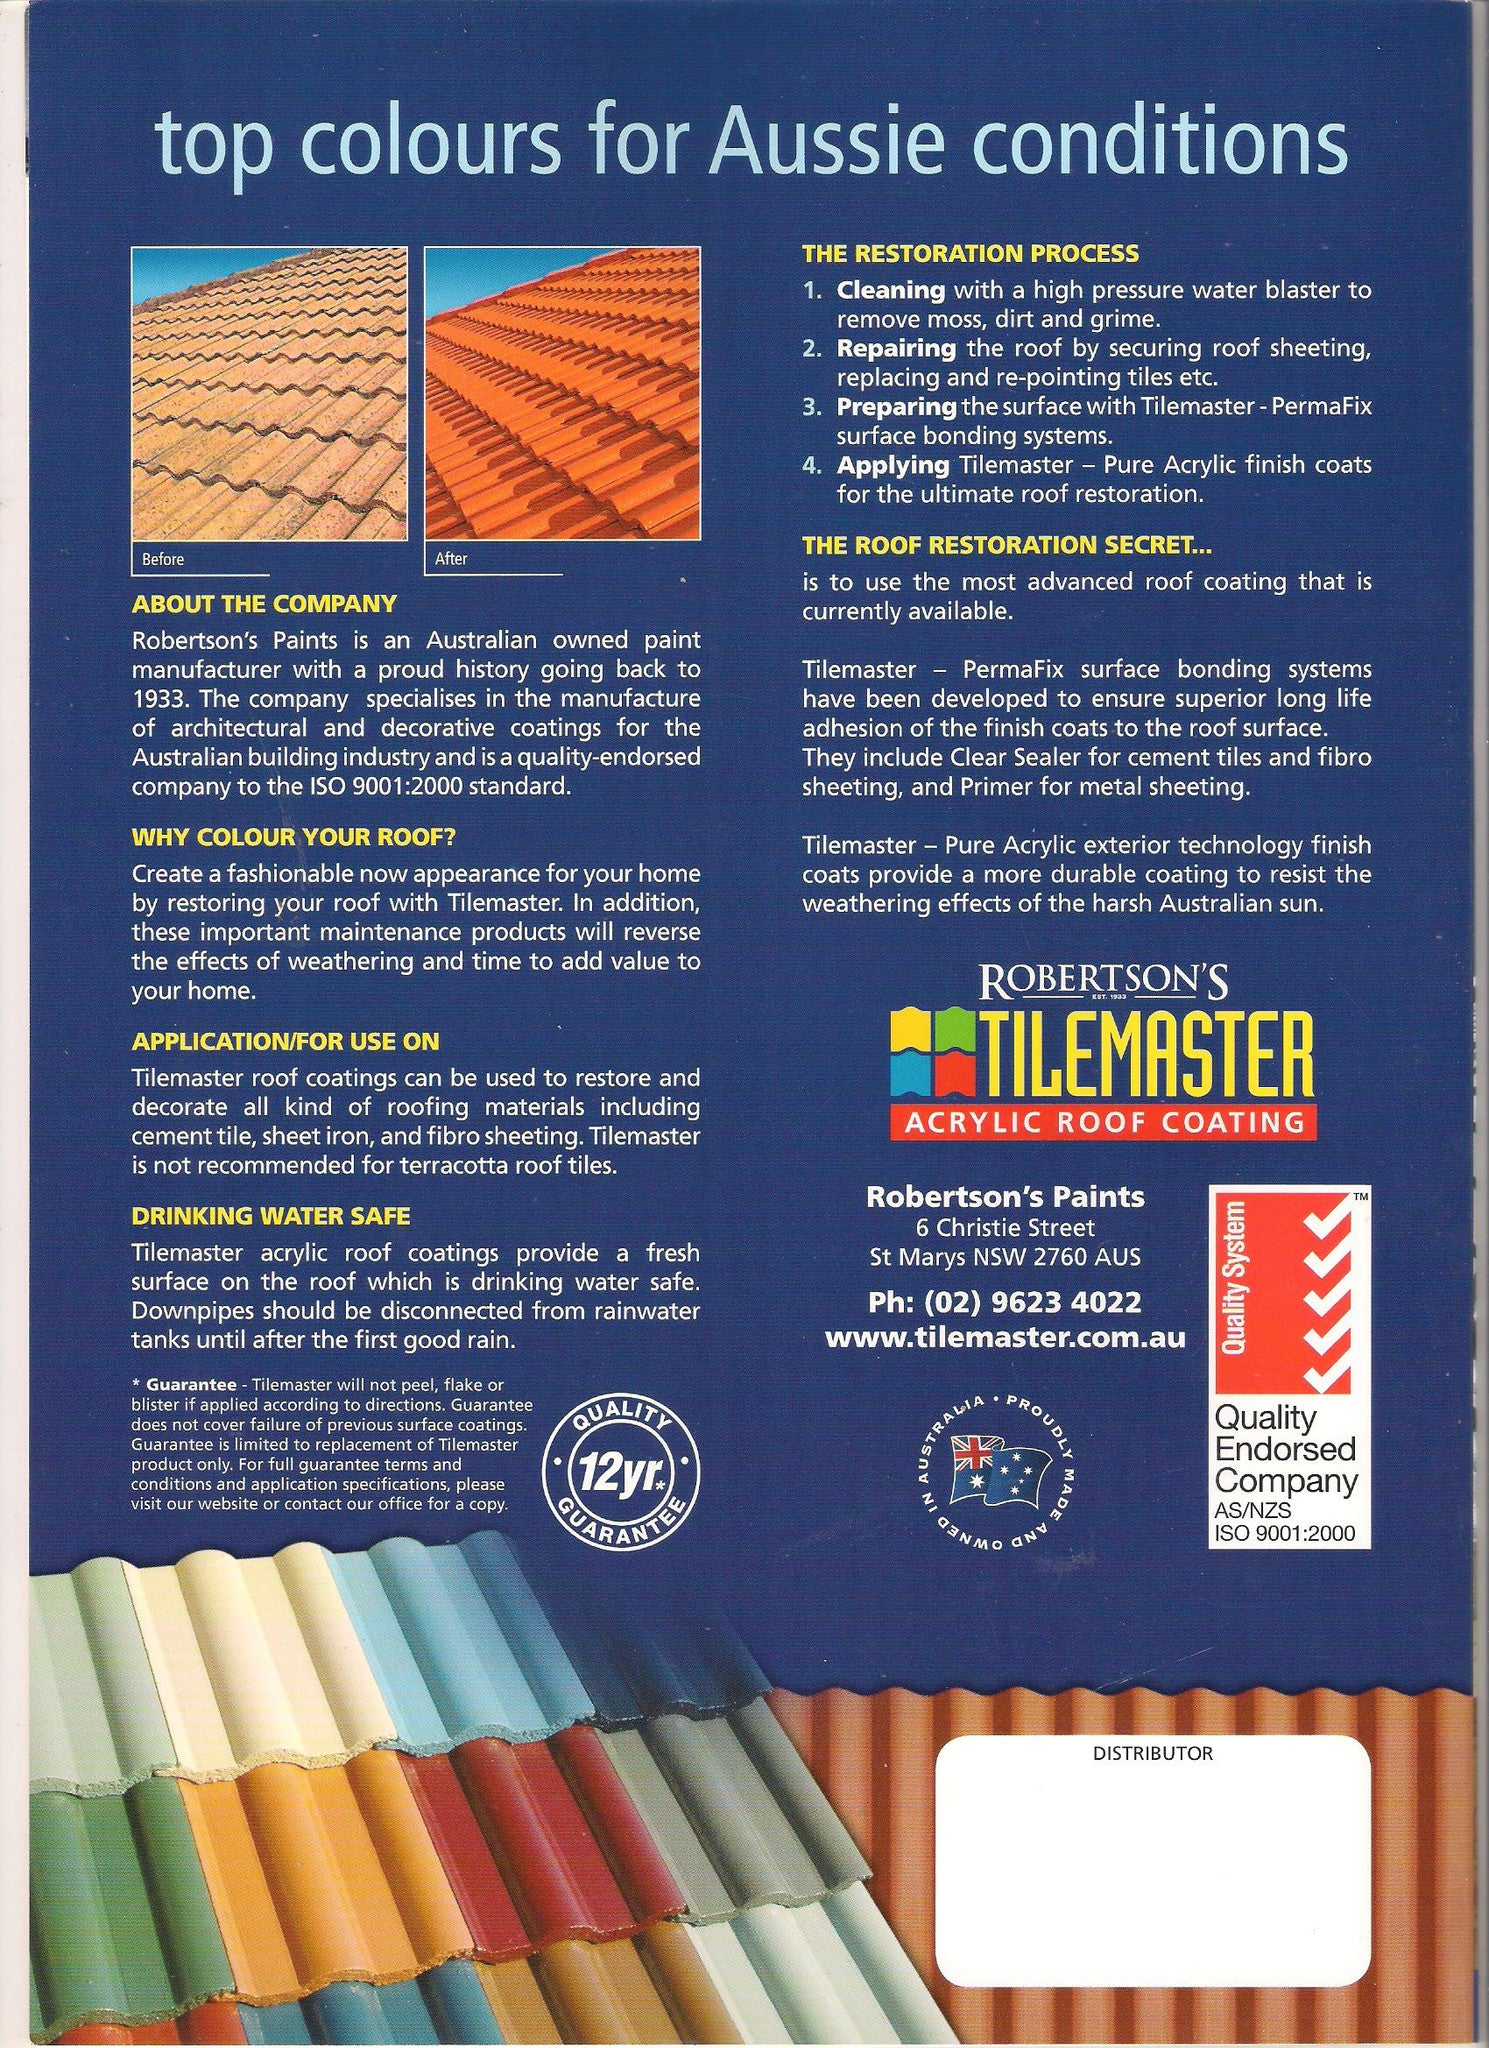 Tilemaster - Clear Sealer - Roof Coating